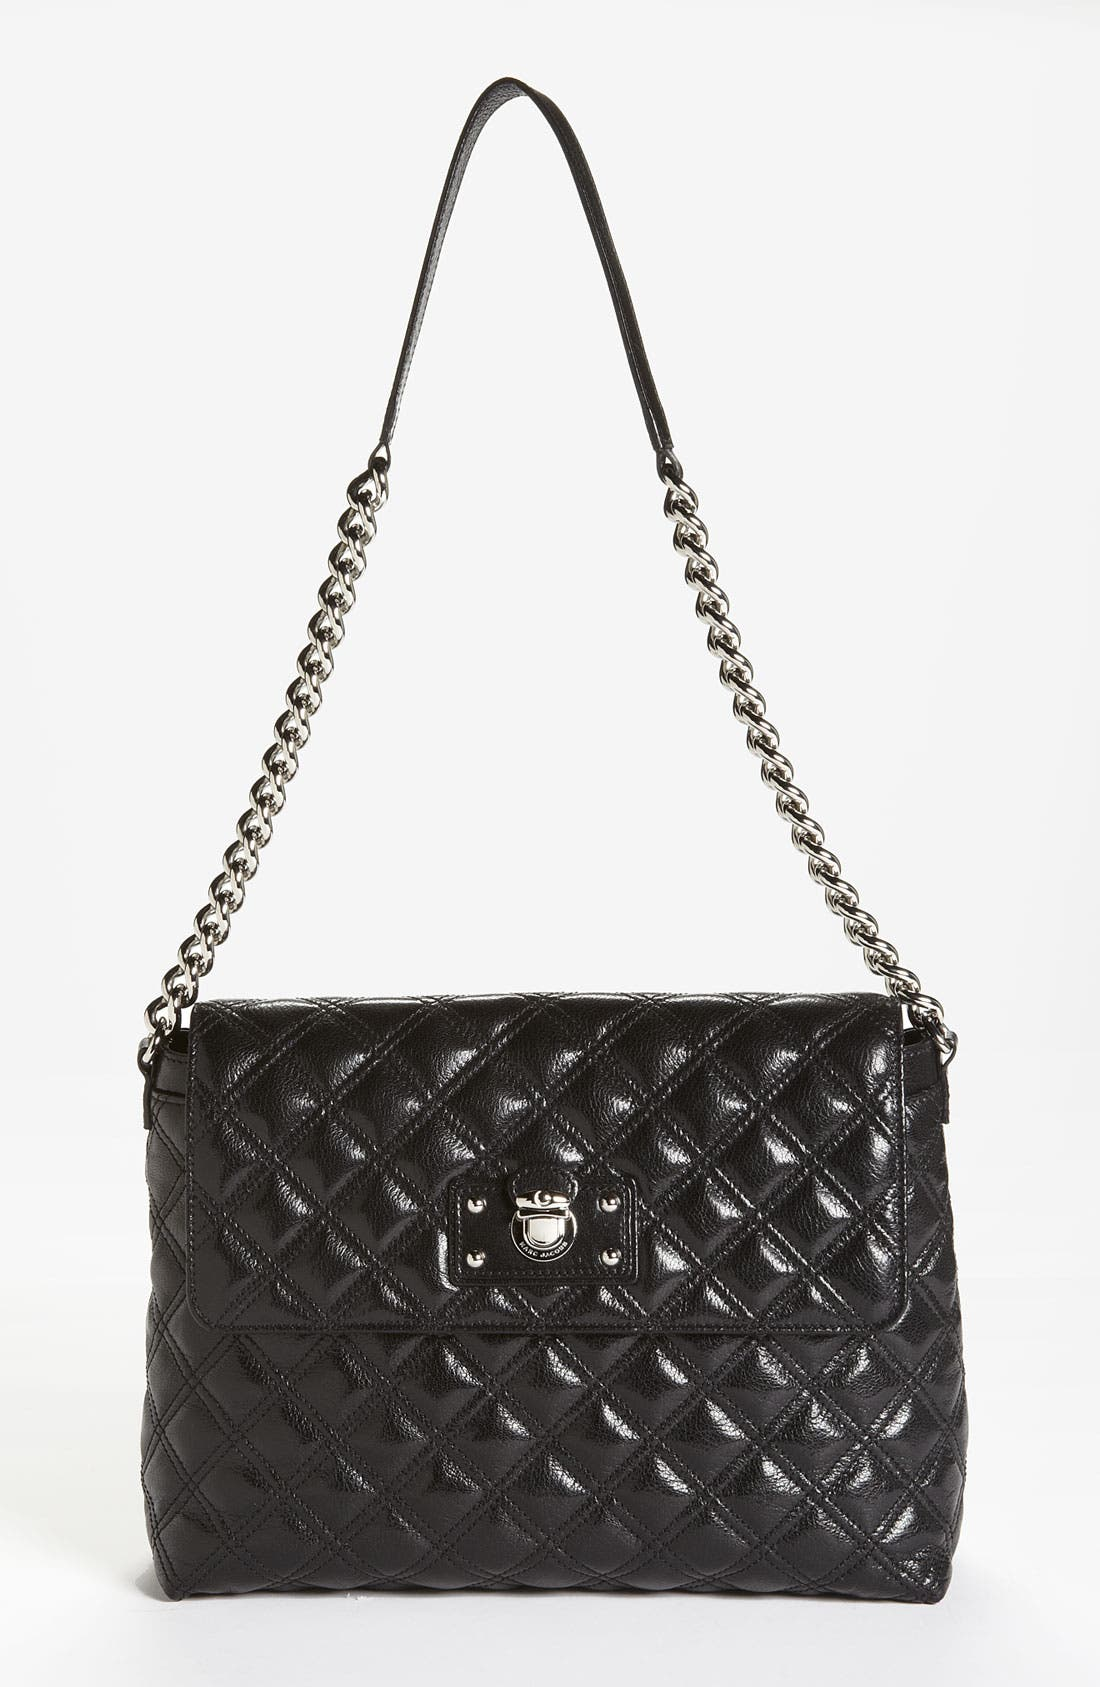 Main Image - MARC JACOBS 'The XL Single' Leather Shoulder Bag